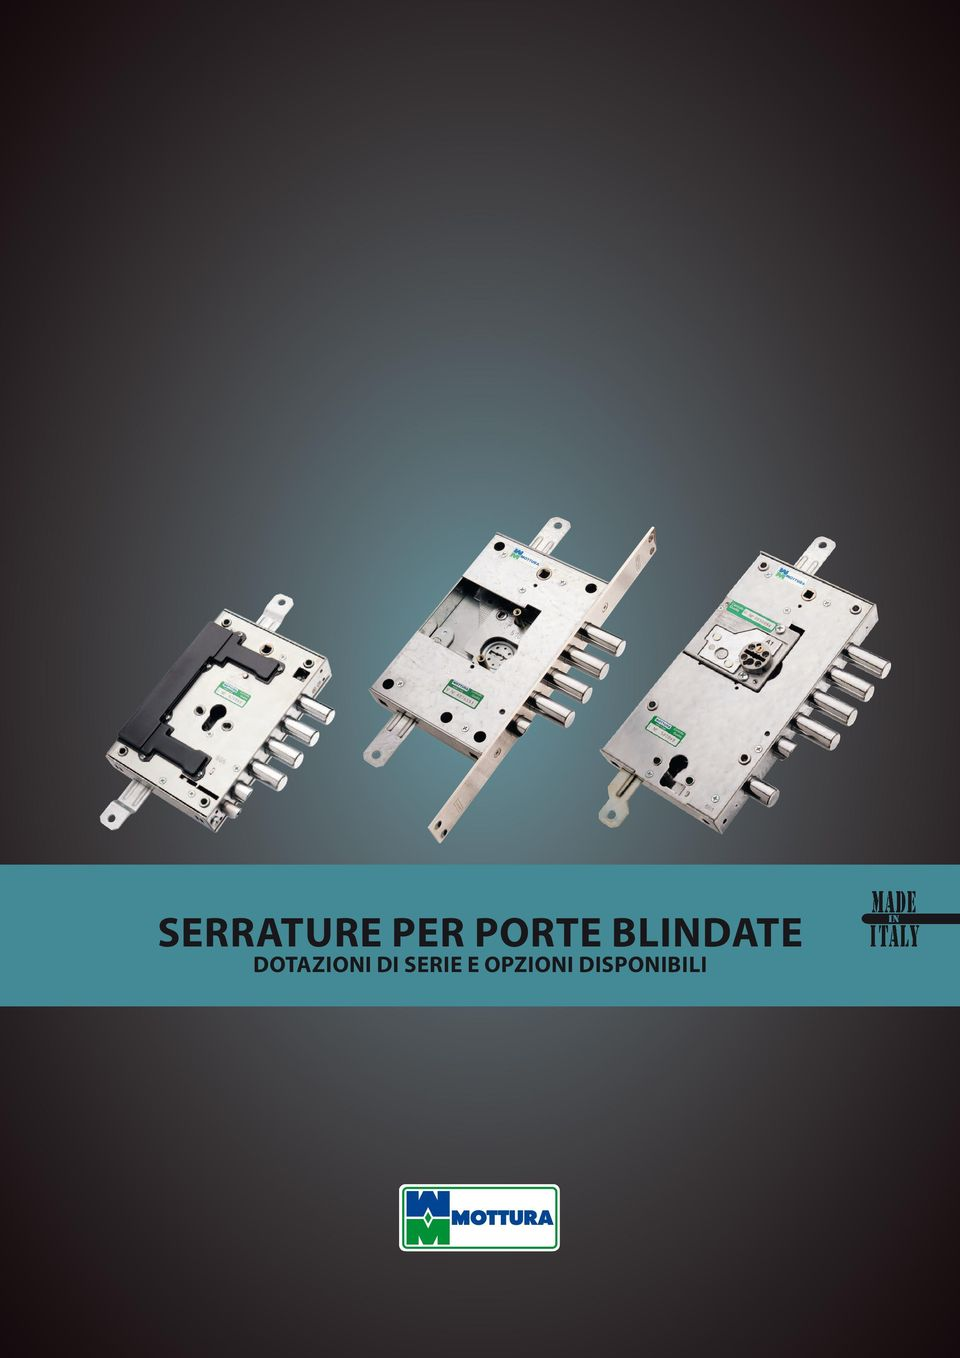 Serrature per porte blindate pdf for Serrature per porte blindate